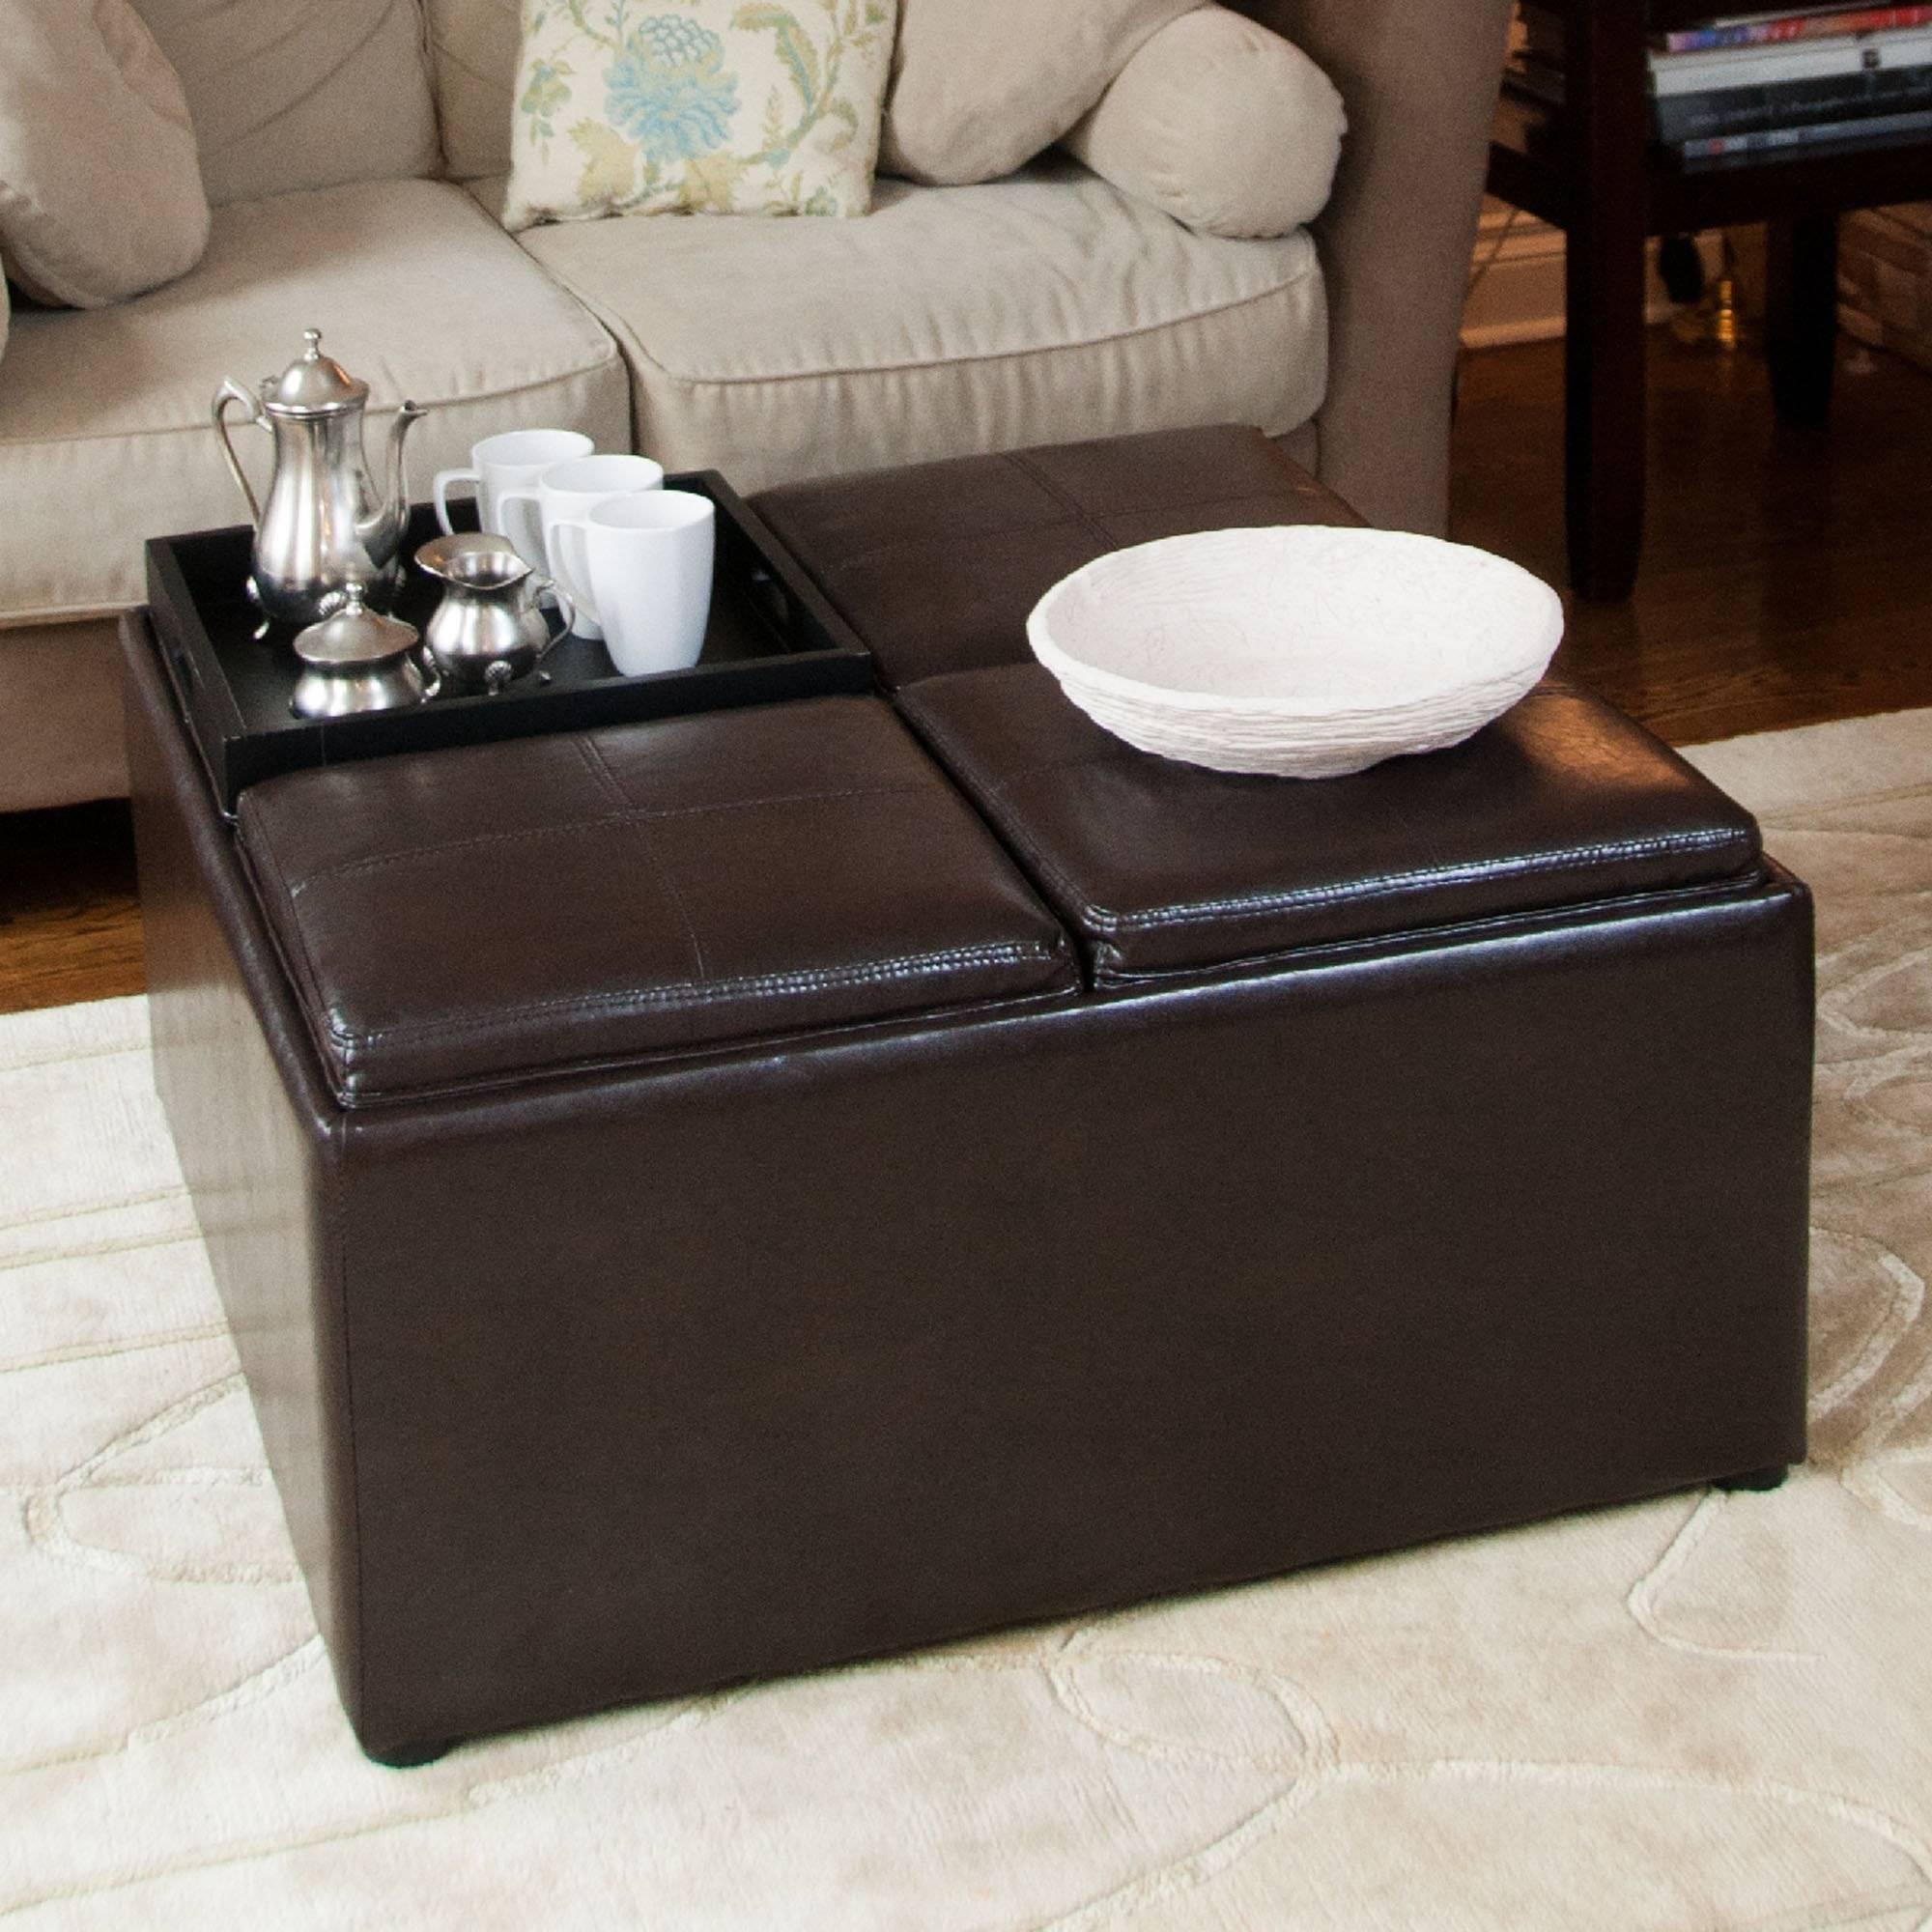 Coffee Table With Ottoman Storage | Coffee Tables Decoration in Coffee Tables With Seating And Storage (Image 7 of 30)